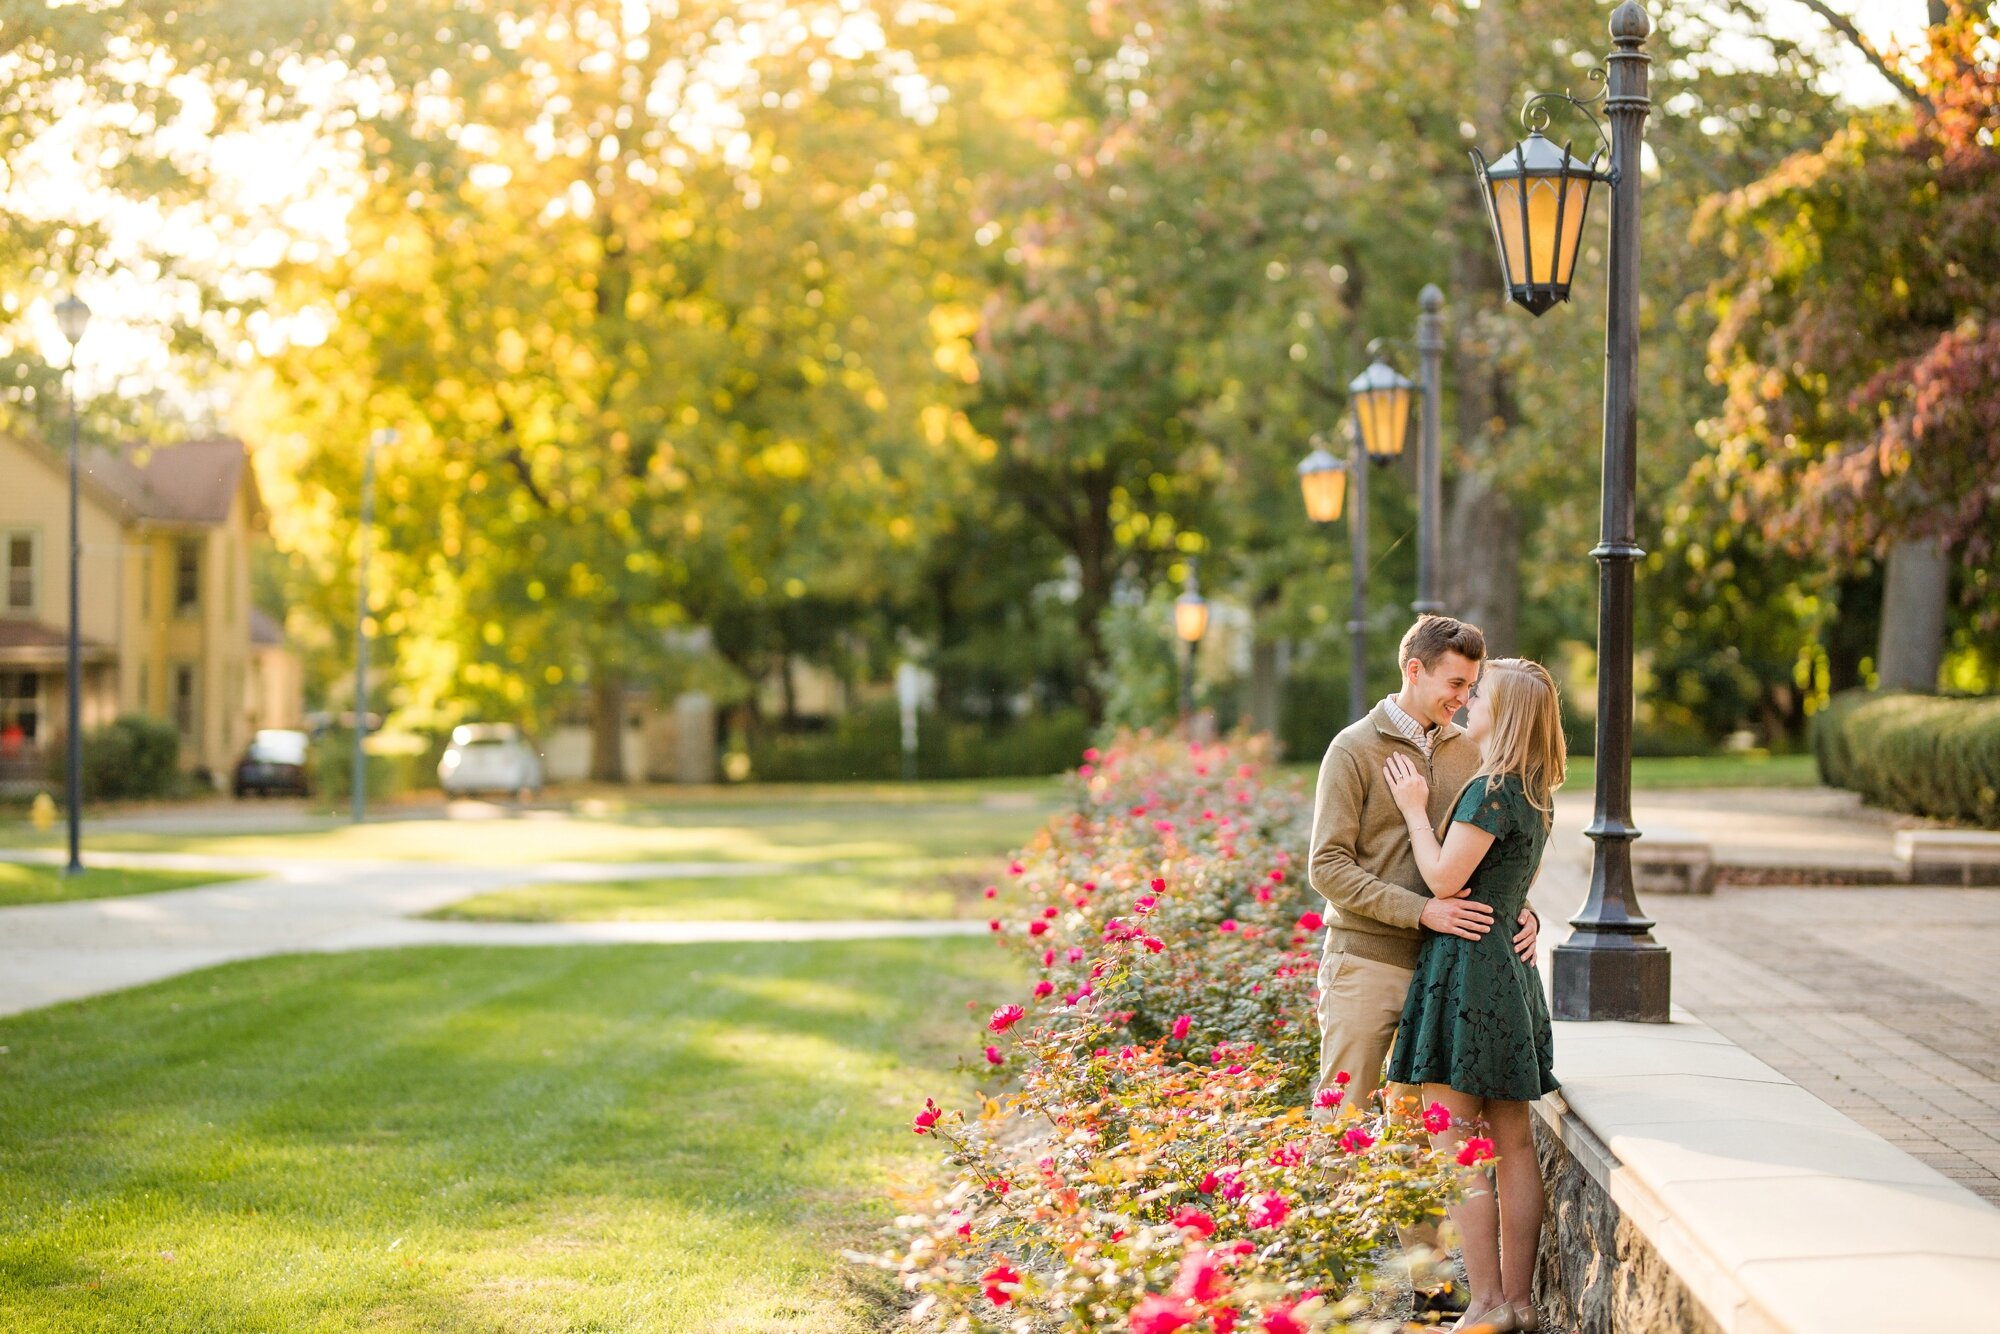 pittsburgh wedding photographer, westminster college engagement photos, pittsburgh engagement photographer, westminster wedding photographer